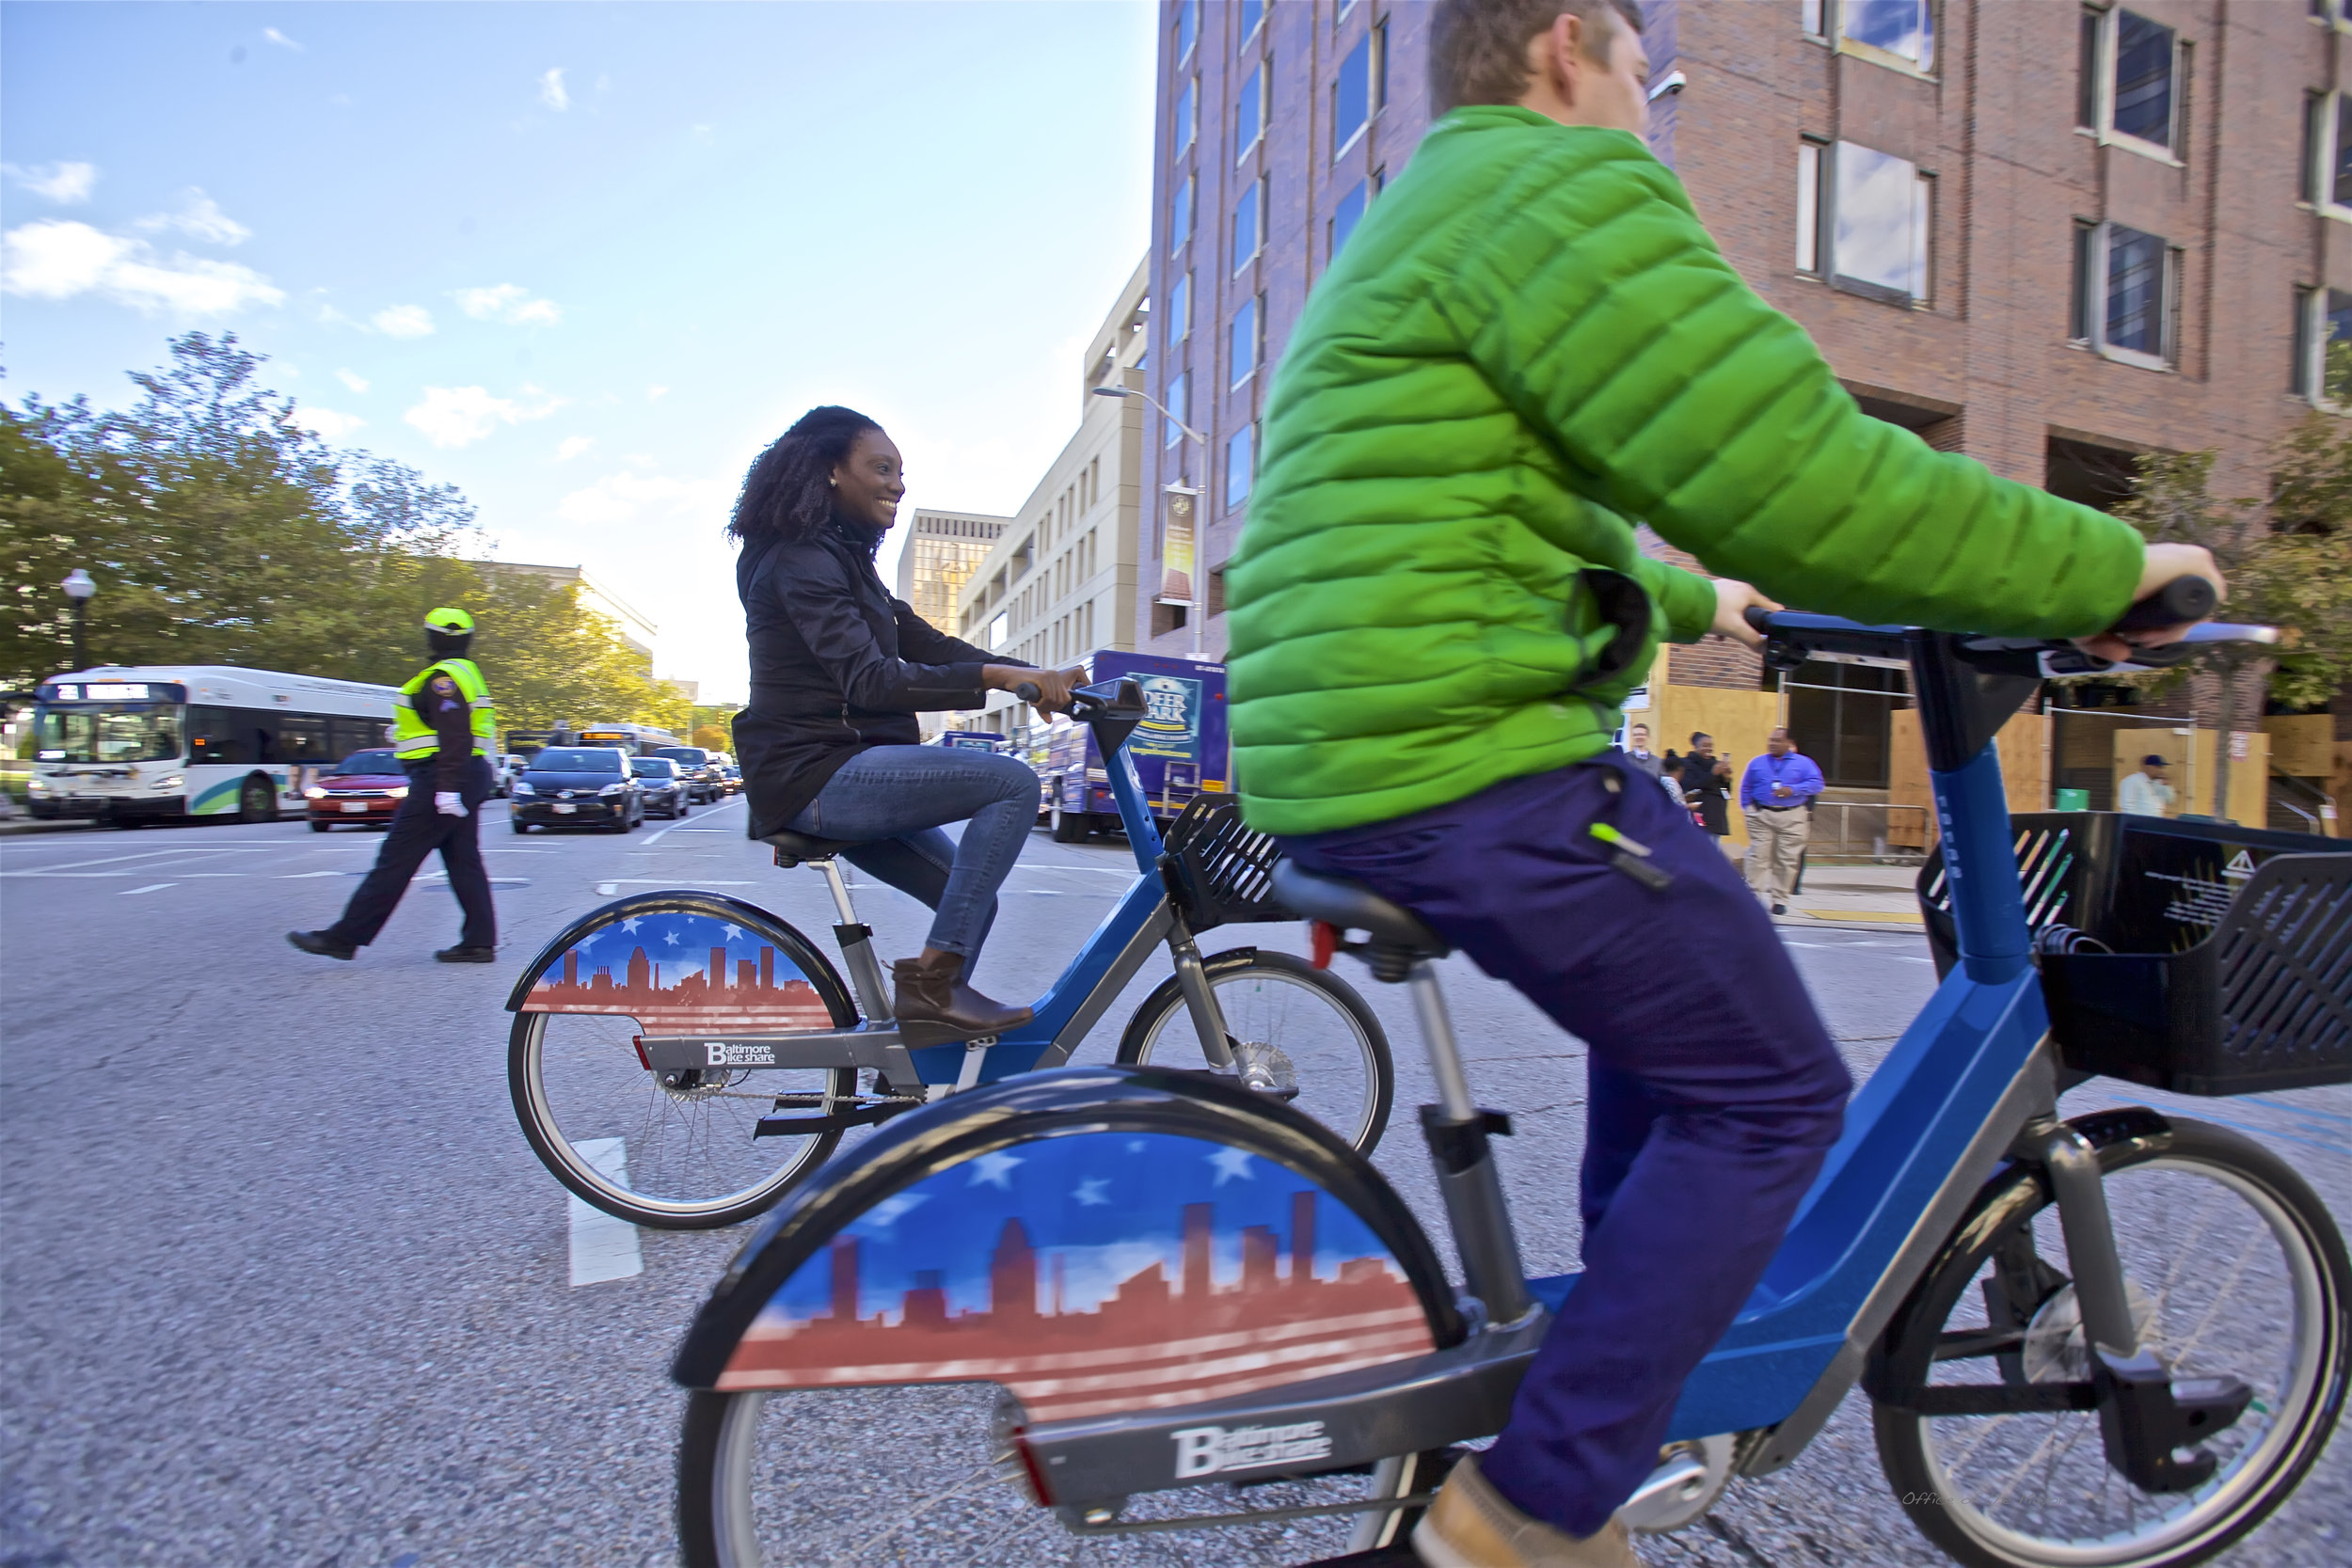 Bike Share Baltimore Launch - 2016-10-28 at 10-34-55.jpg